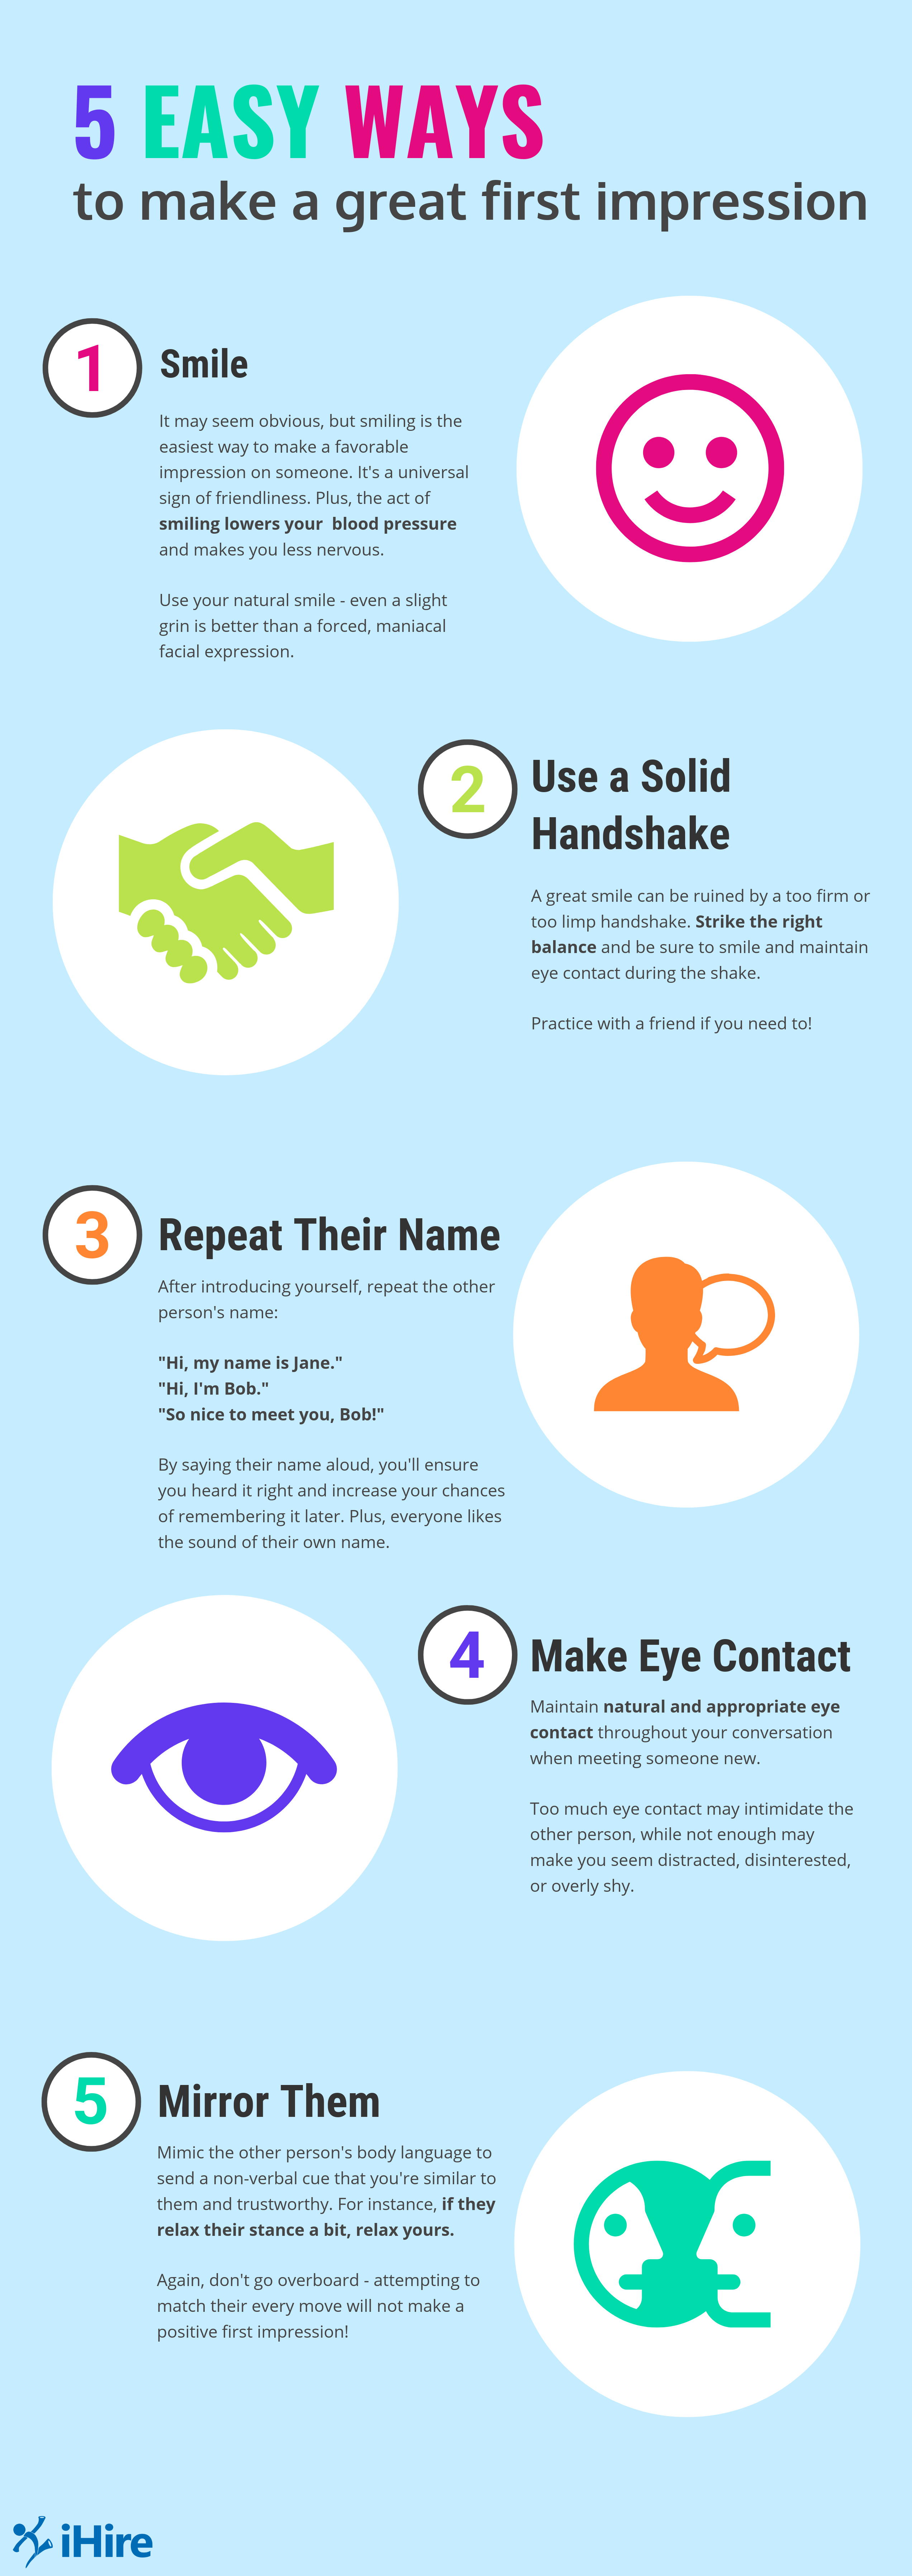 ihire infographic 5 easy ways to make a great first impression